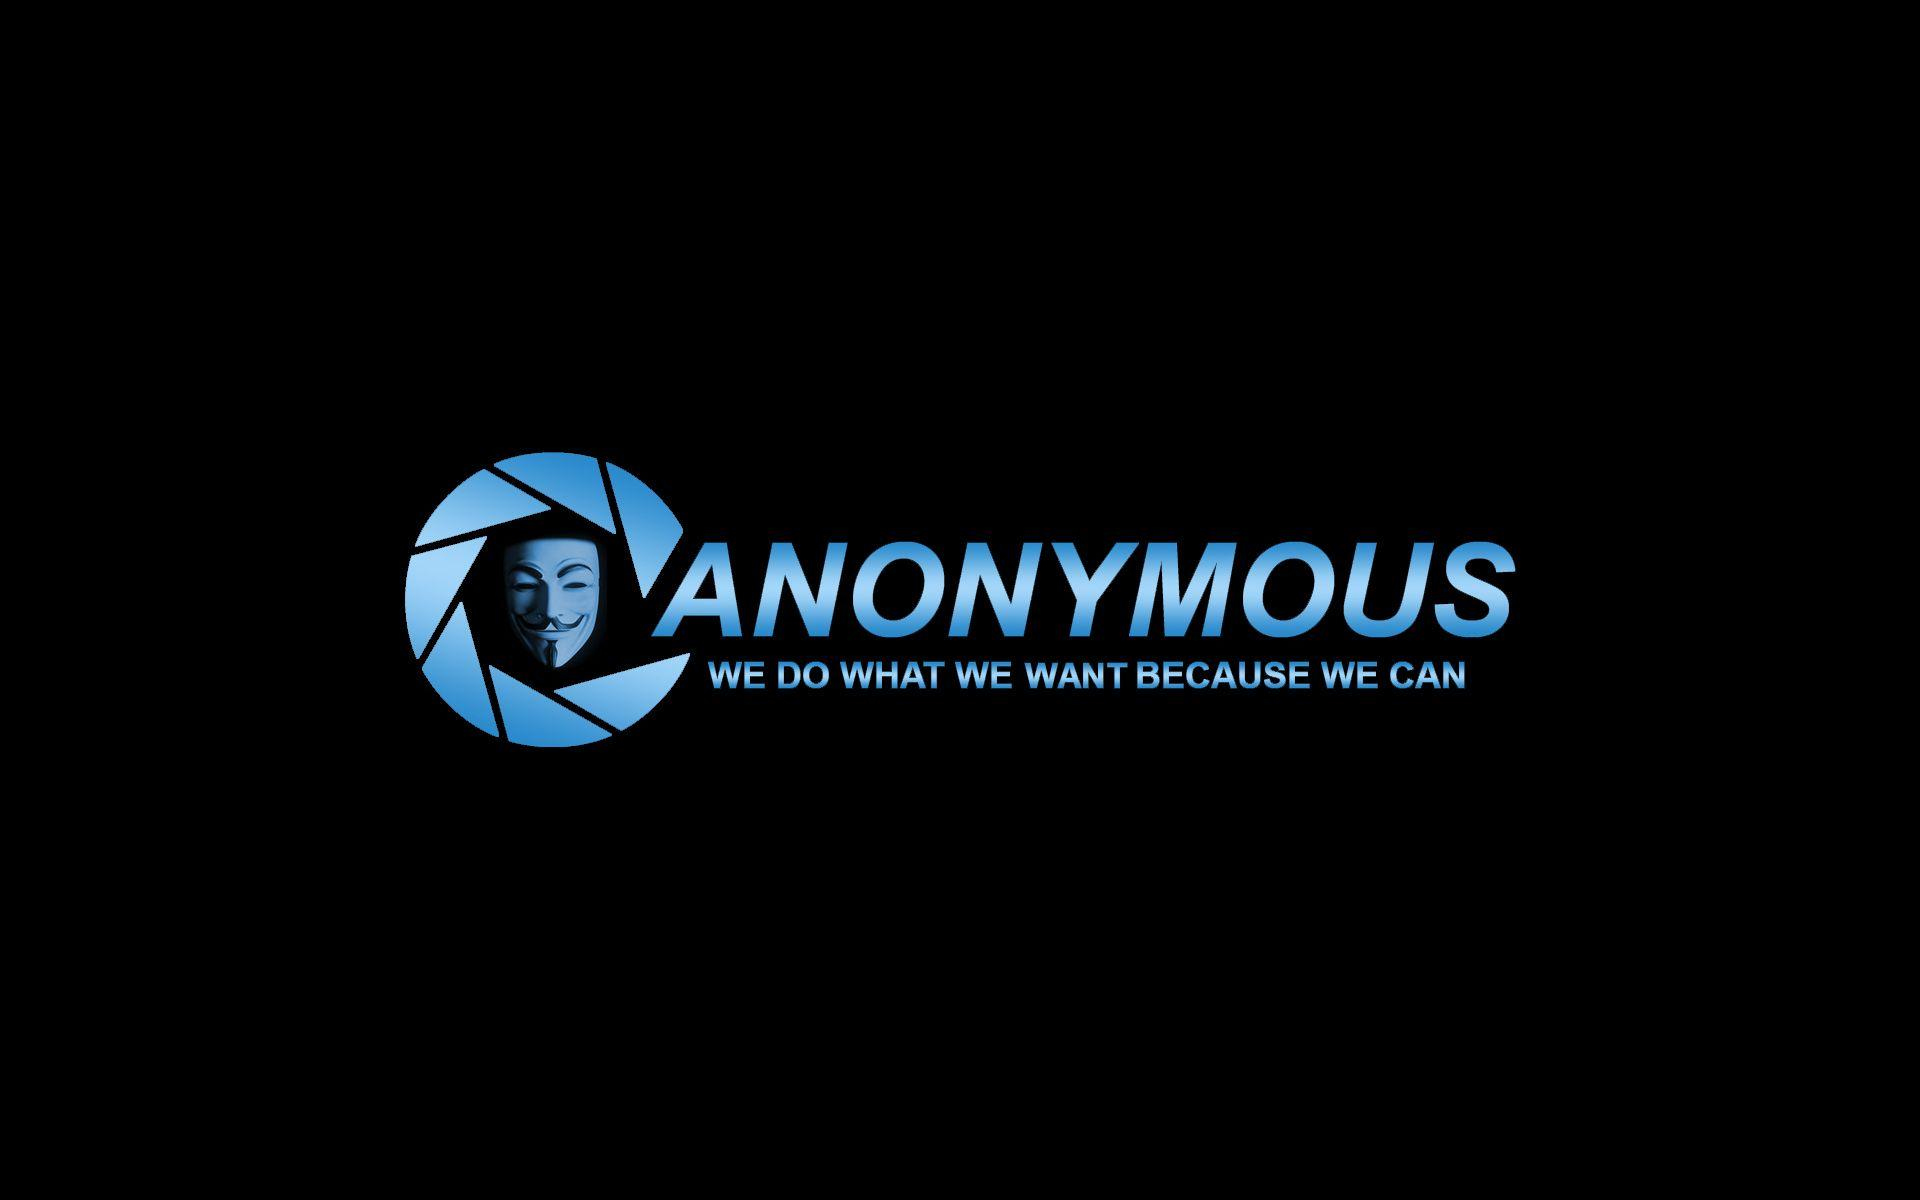 anonymous wallpapers full hd wallpaper search page 3